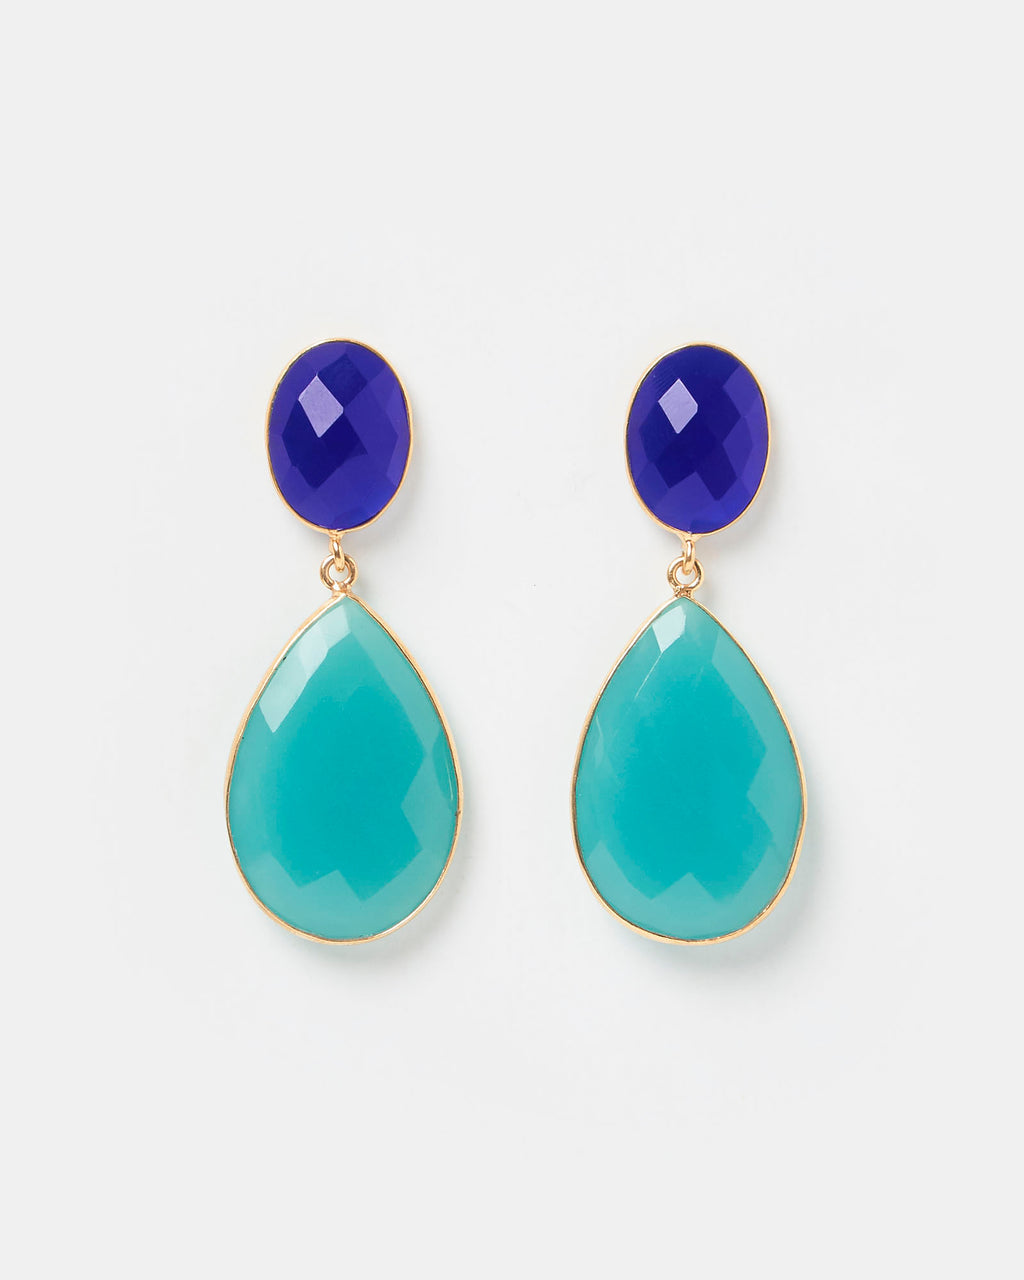 Izoa Lasting Fate Earrings Blue Green